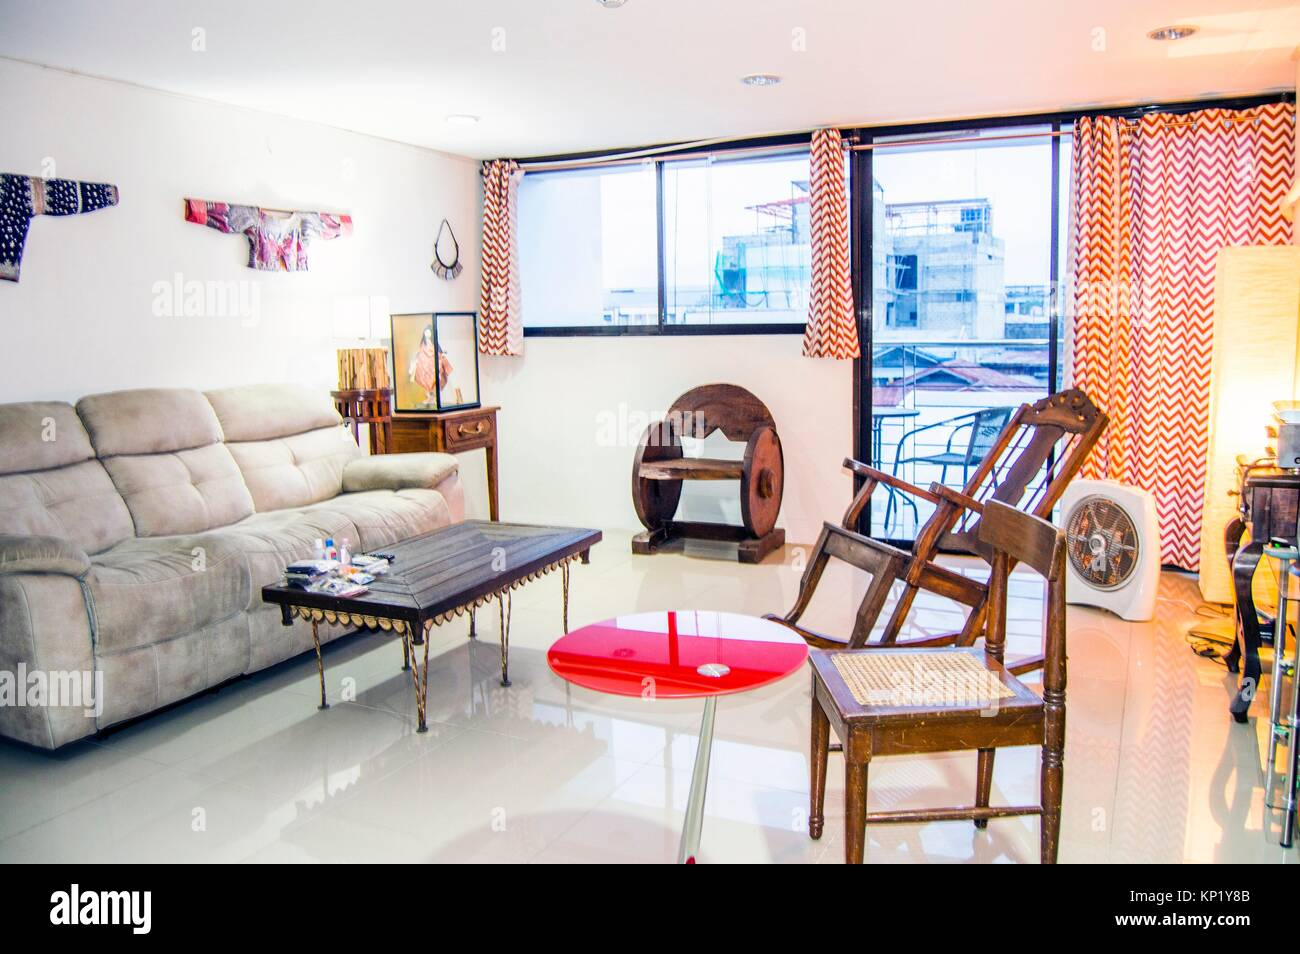 Living Room Interior With Antique And Modern Furnishings And Decor Stock Photo Alamy